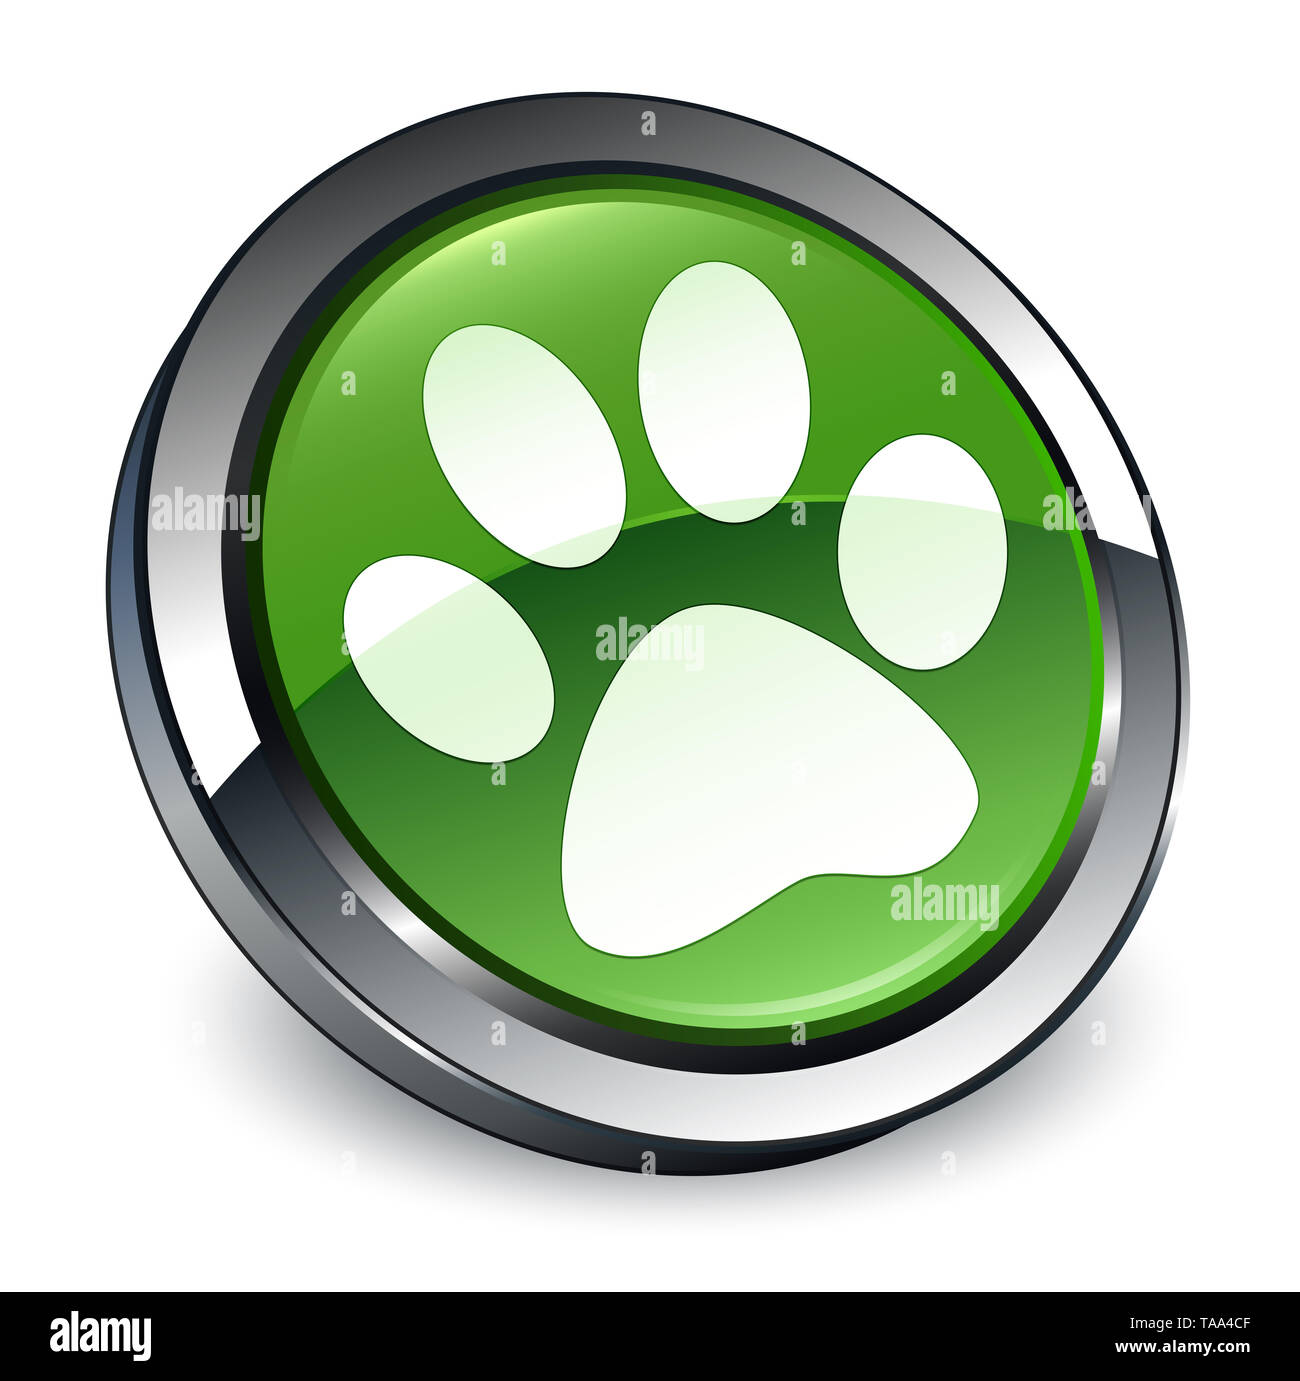 Animal footprint icon isolated on 3d soft green round button abstract illustration - Stock Image